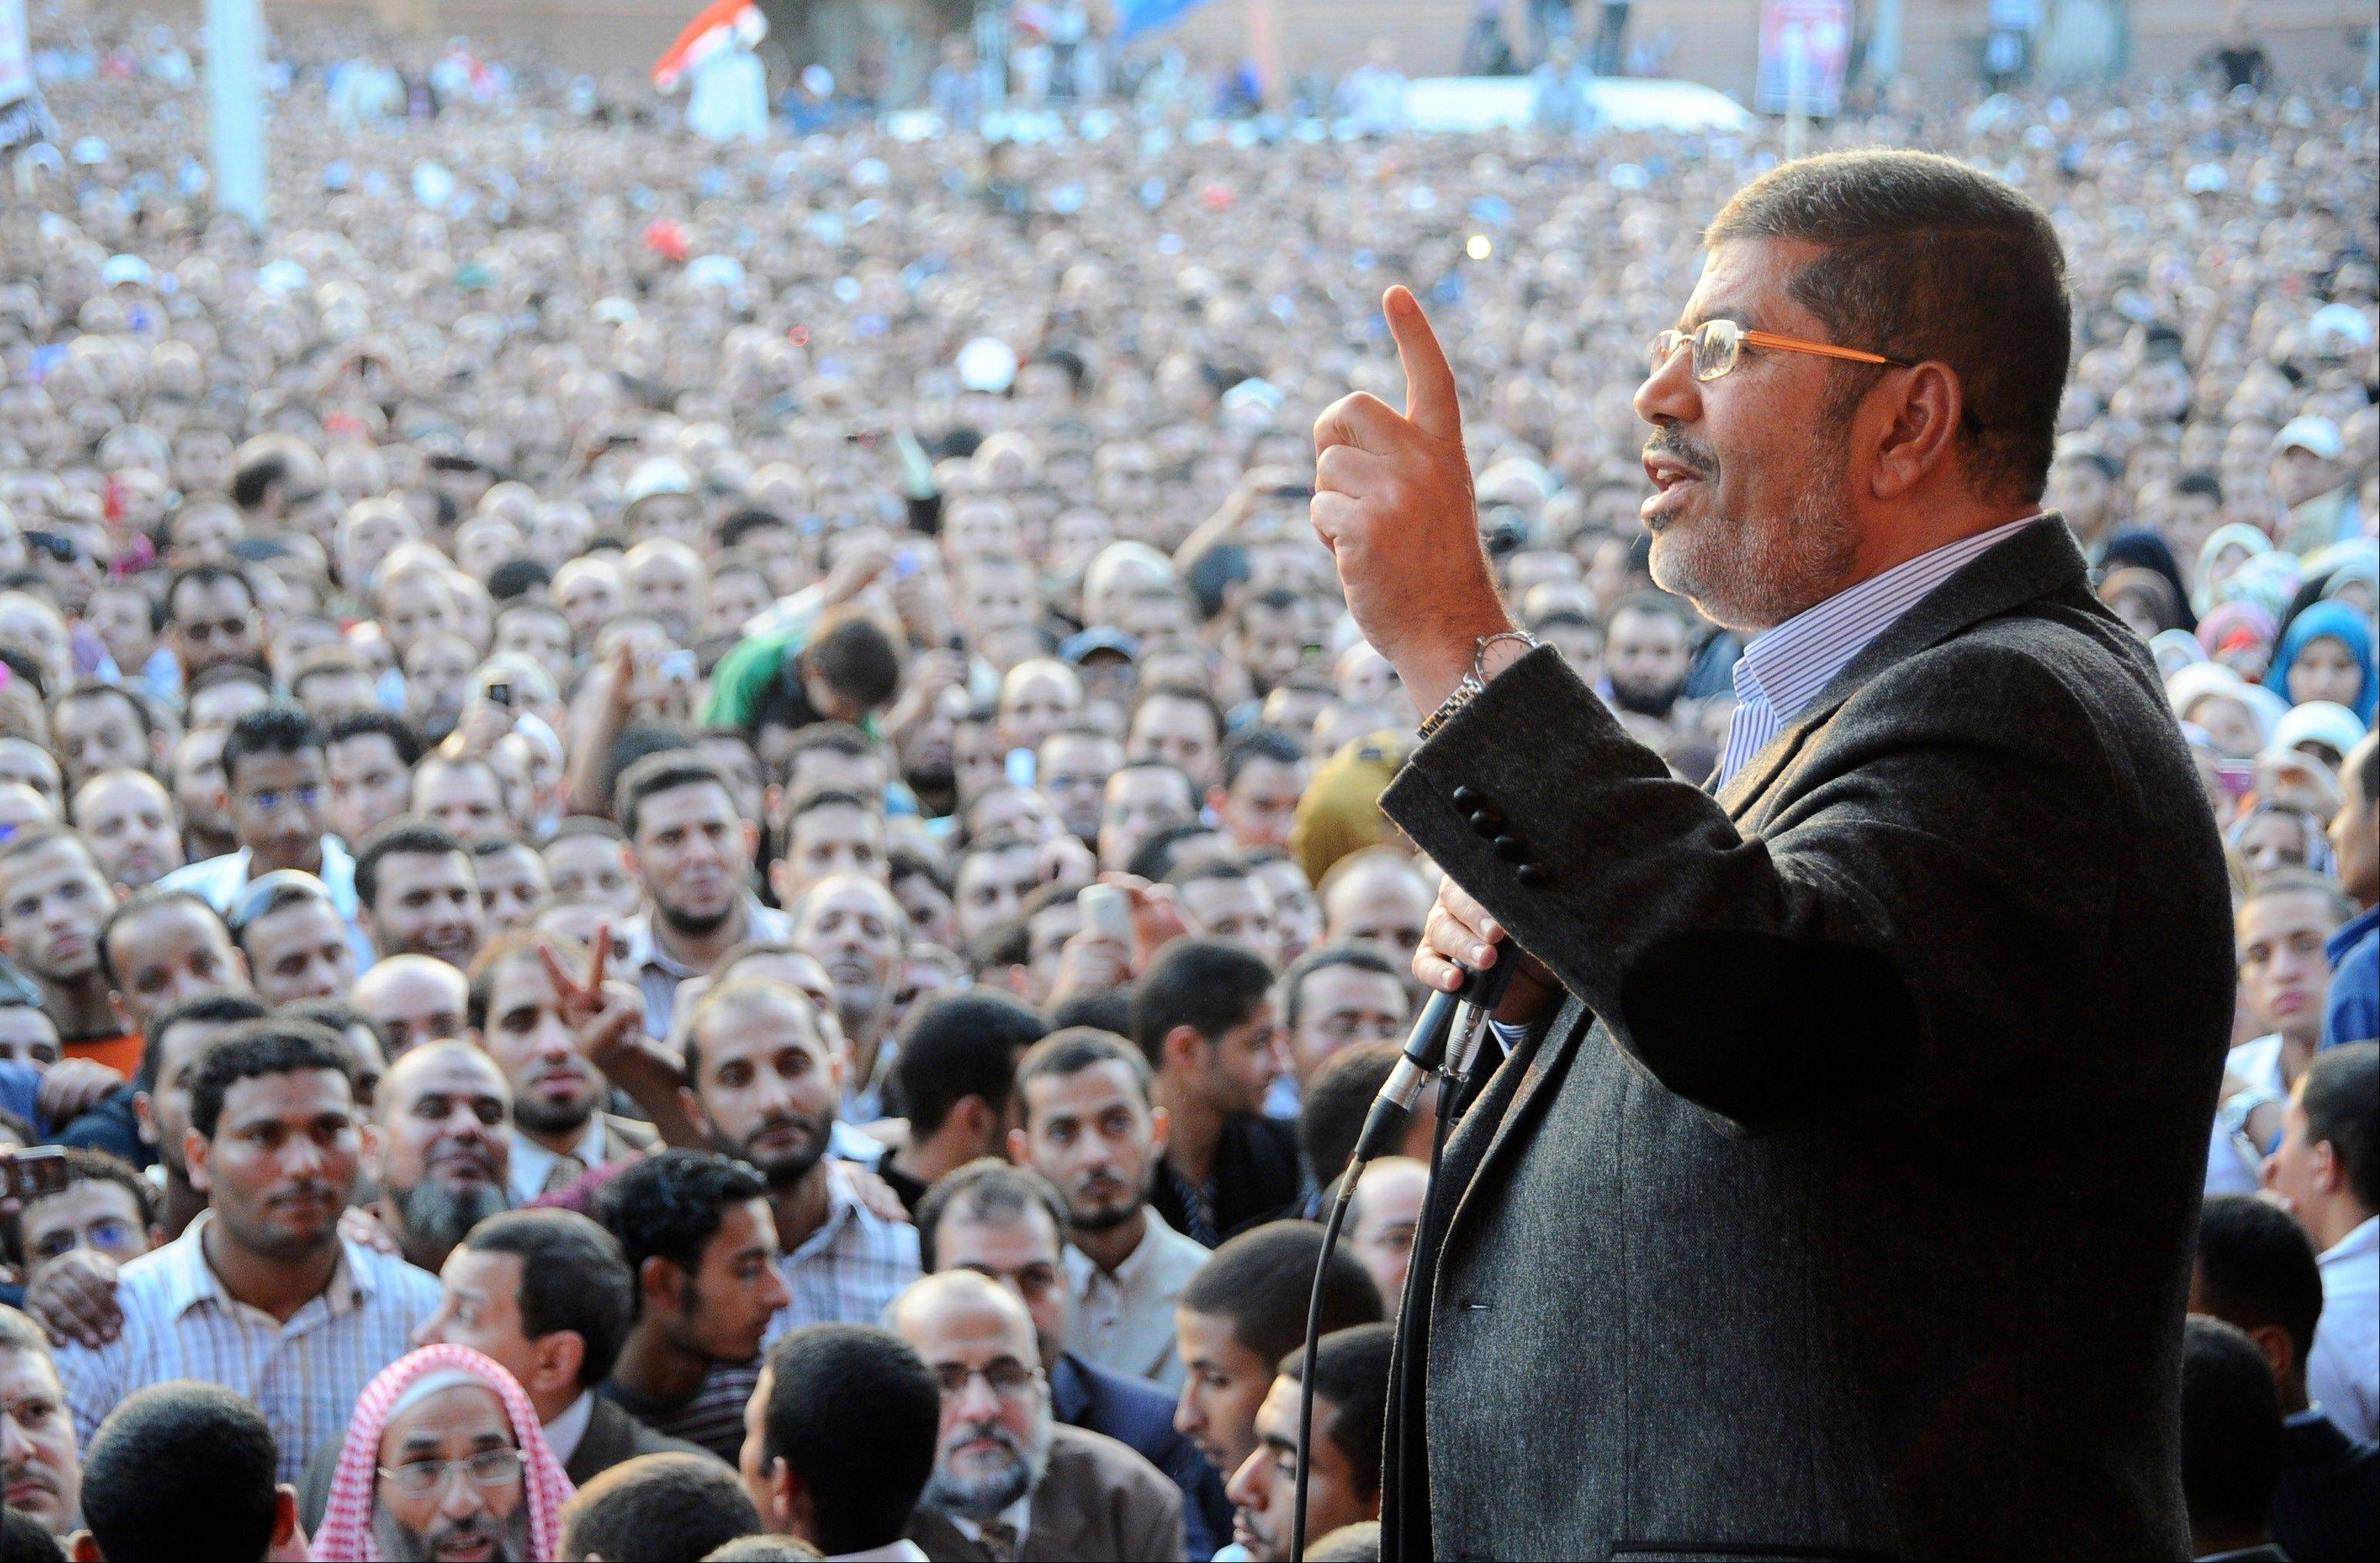 On Friday, Nov. 23, Egyptian President Mohammed Morsi speaks to supporters outside the Presidential palace in Cairo. Egypt�s official news agency says that the country�s highest body of judges has called the president�s recent decrees an �unprecedented assault on the independence of the judiciary and its rulings.�